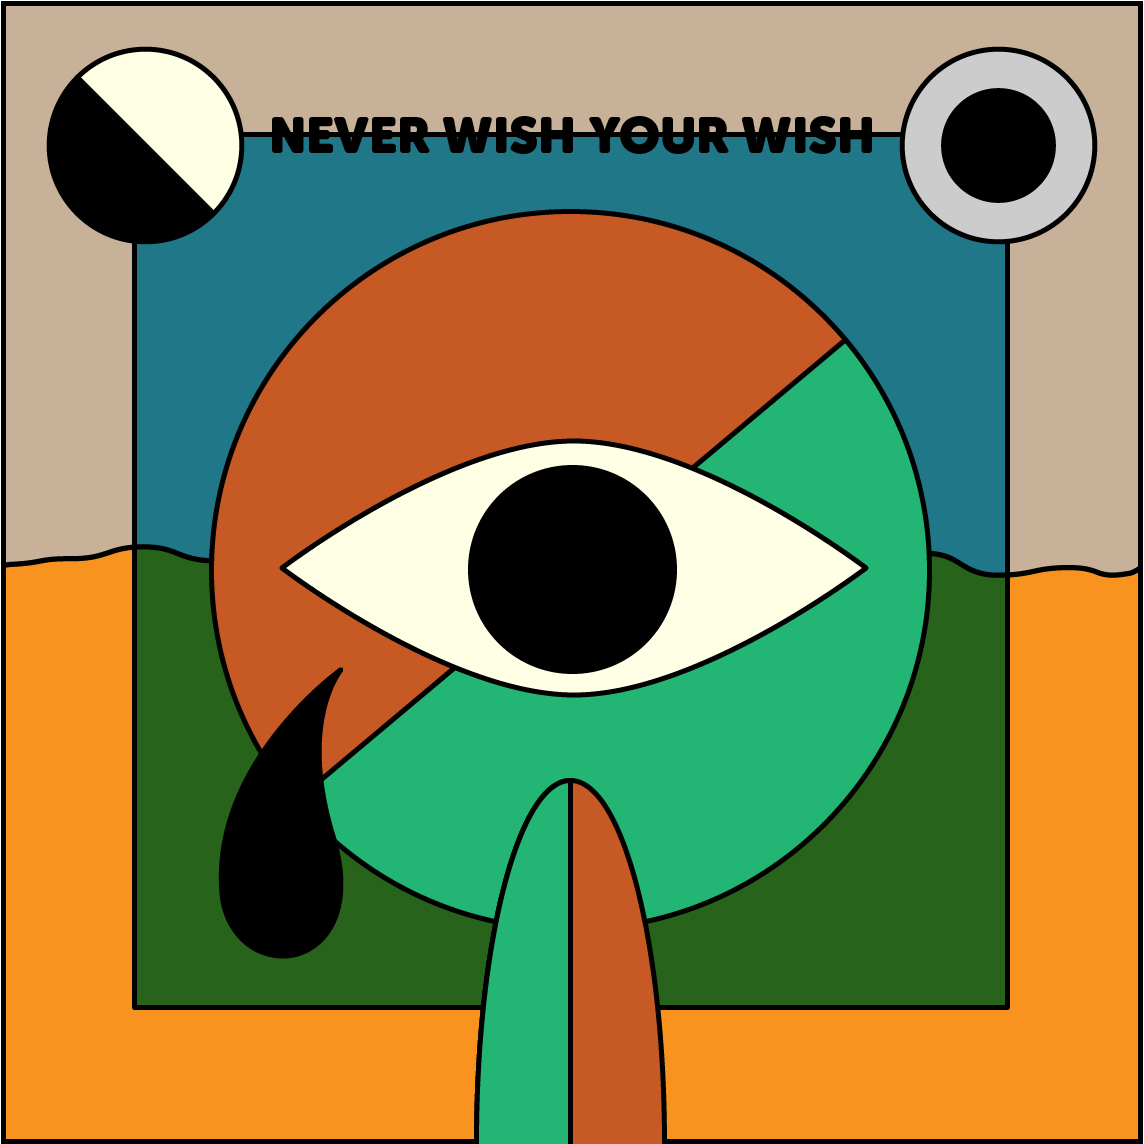 neverwishyourwush-11